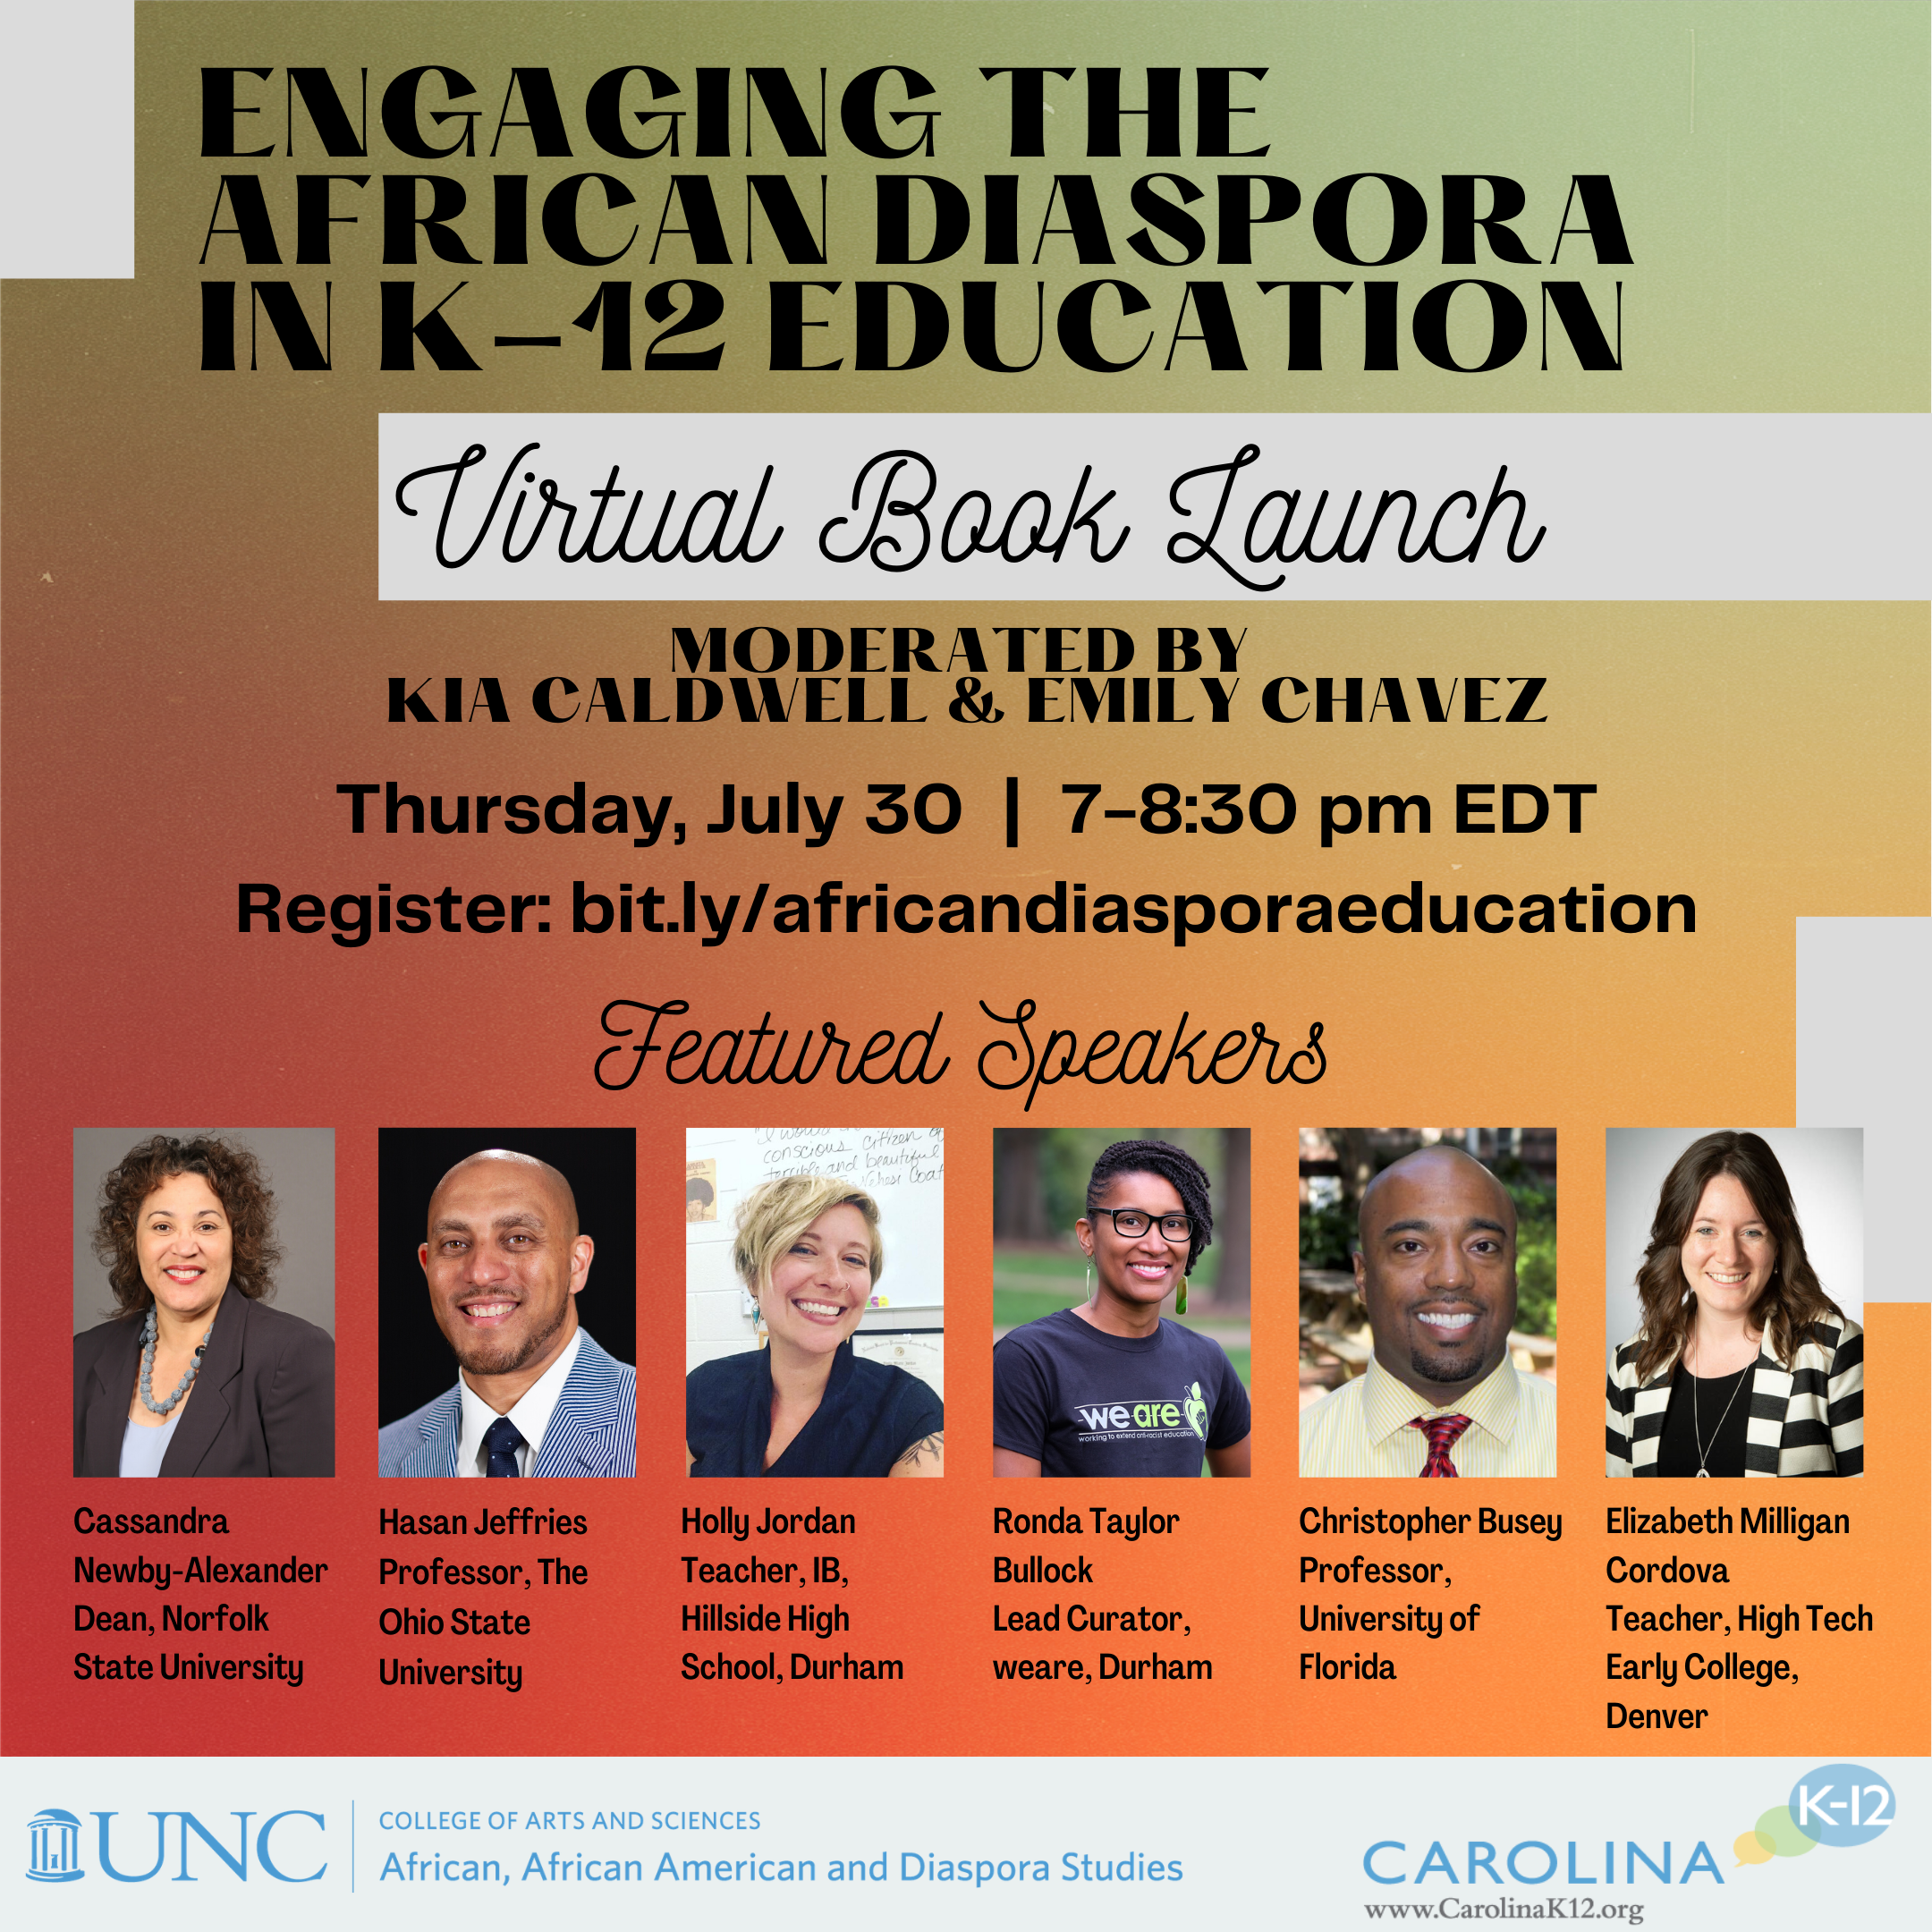 Engaging the African Diaspora in K-12 Education book launch